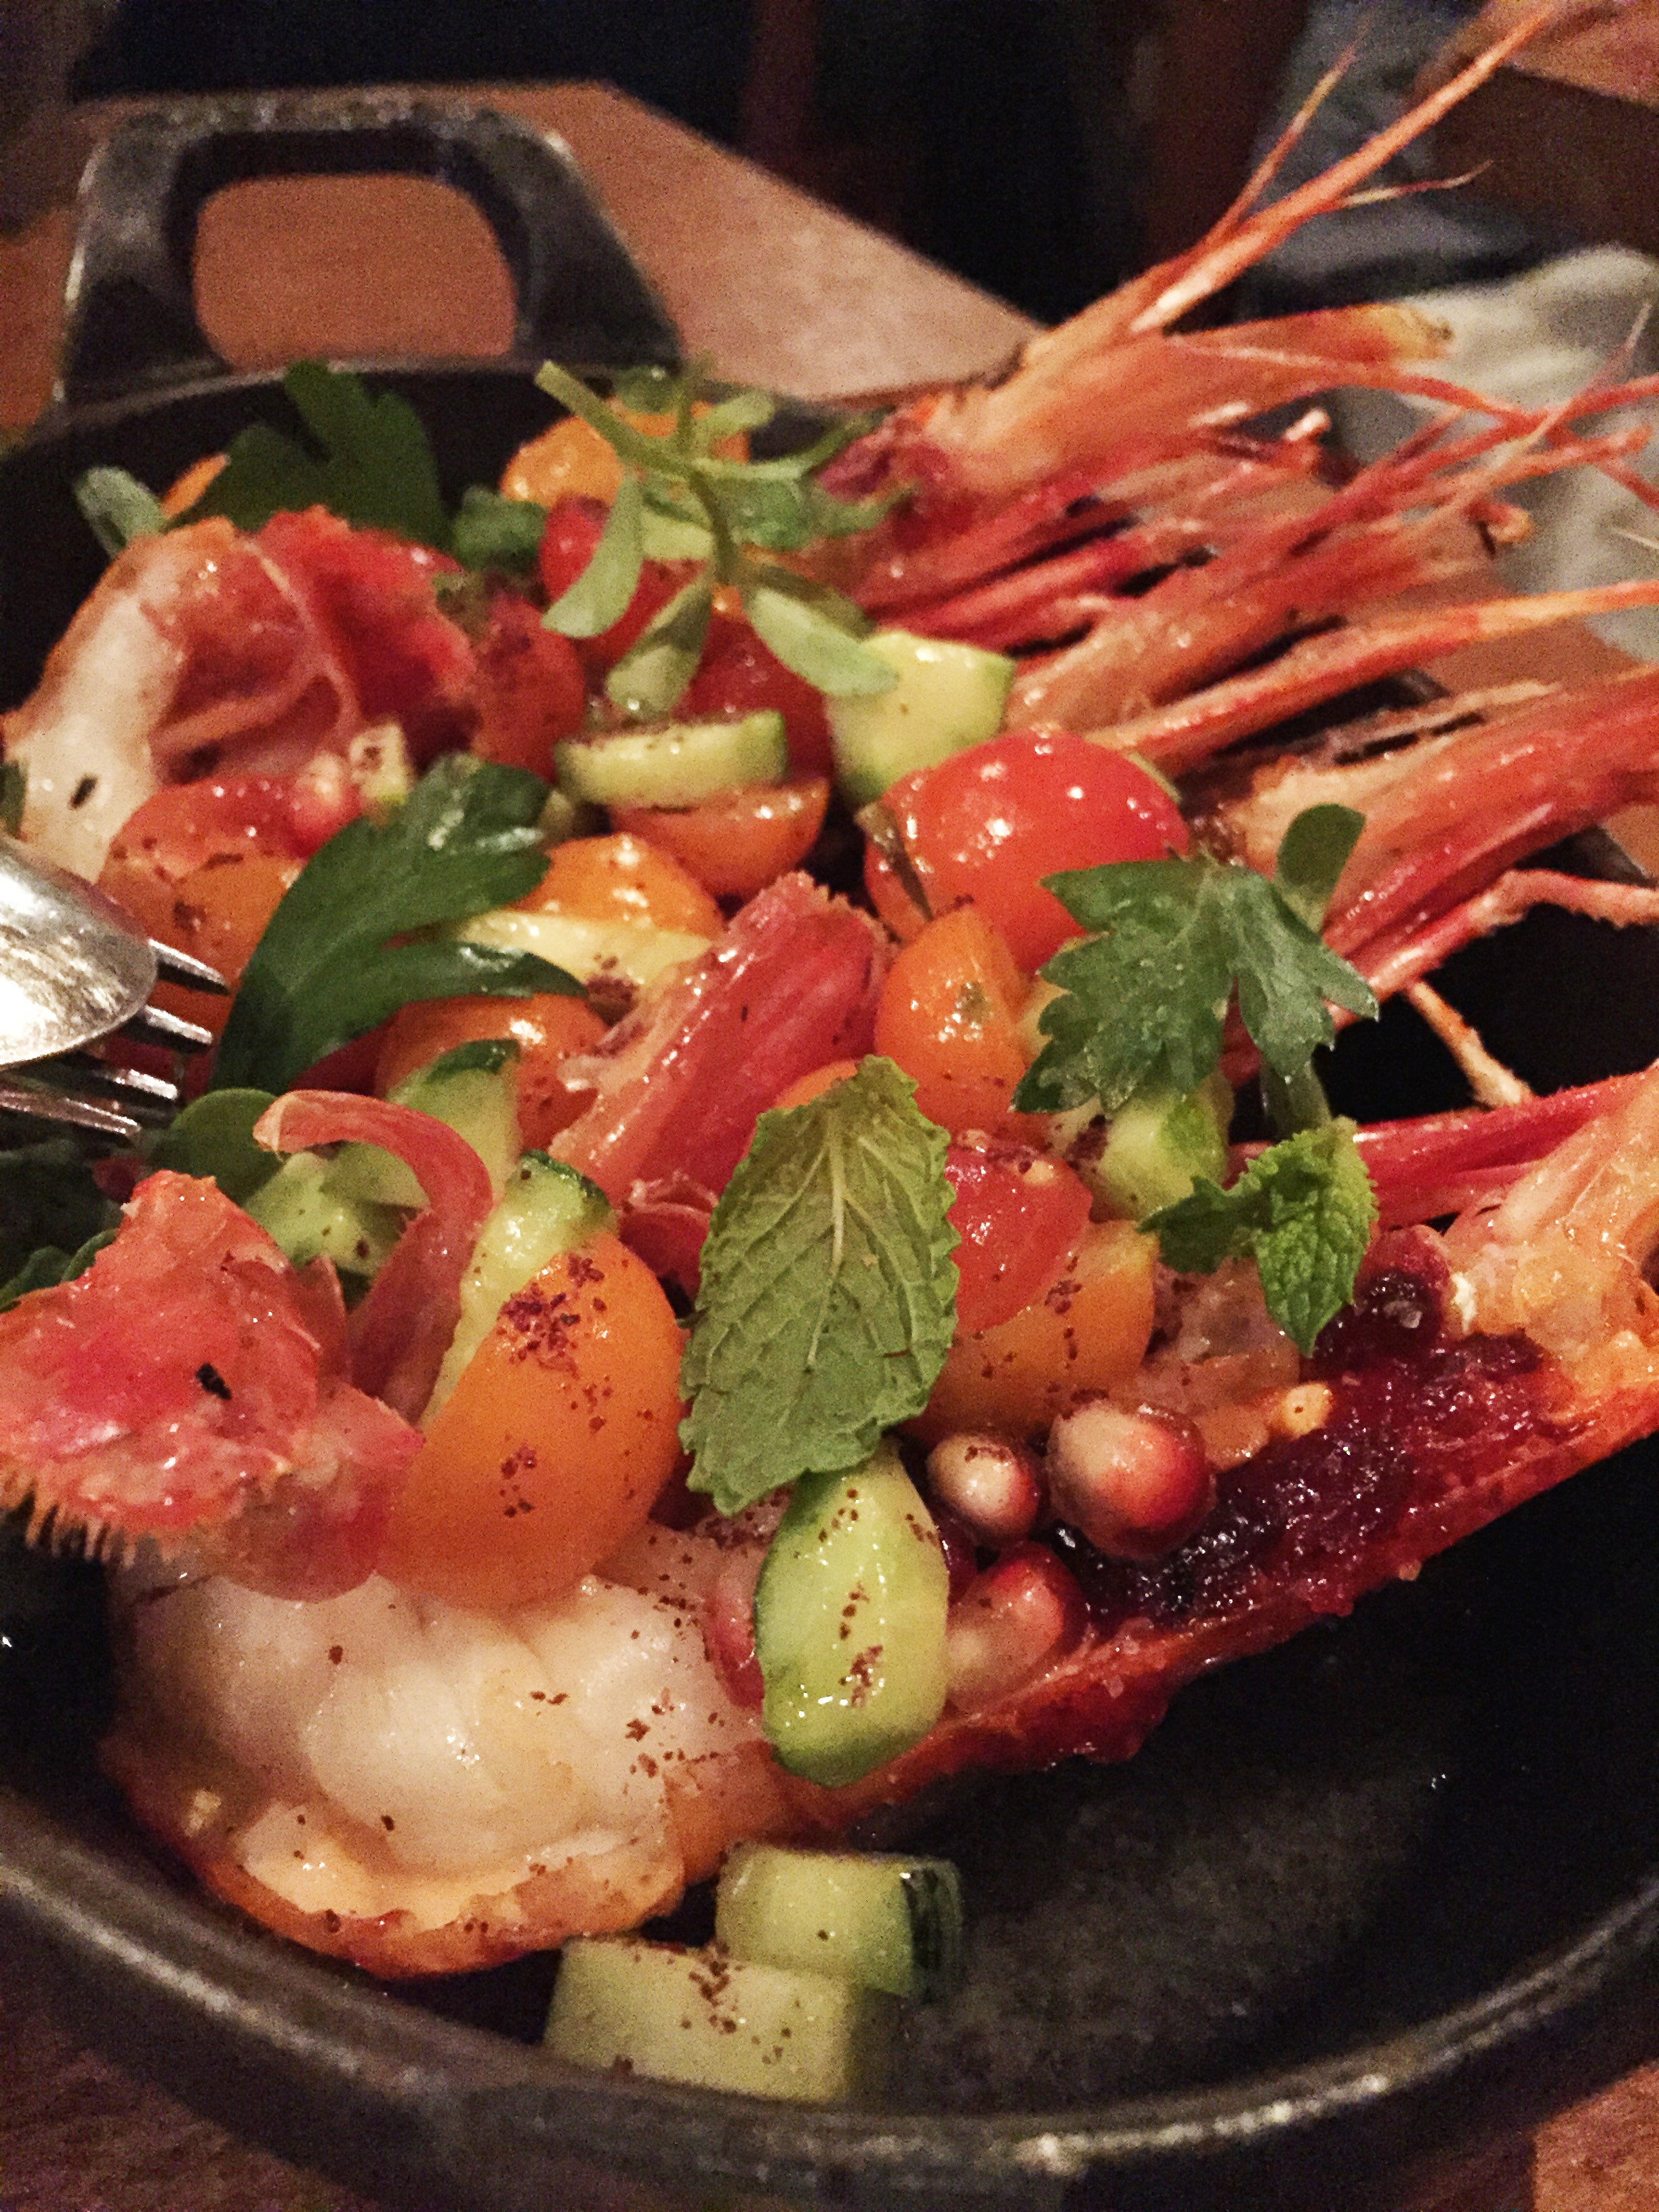 Grilled Santa Barbara Prawns with charred eggplant, cherry tomatoes, cucumbers, and sumac.